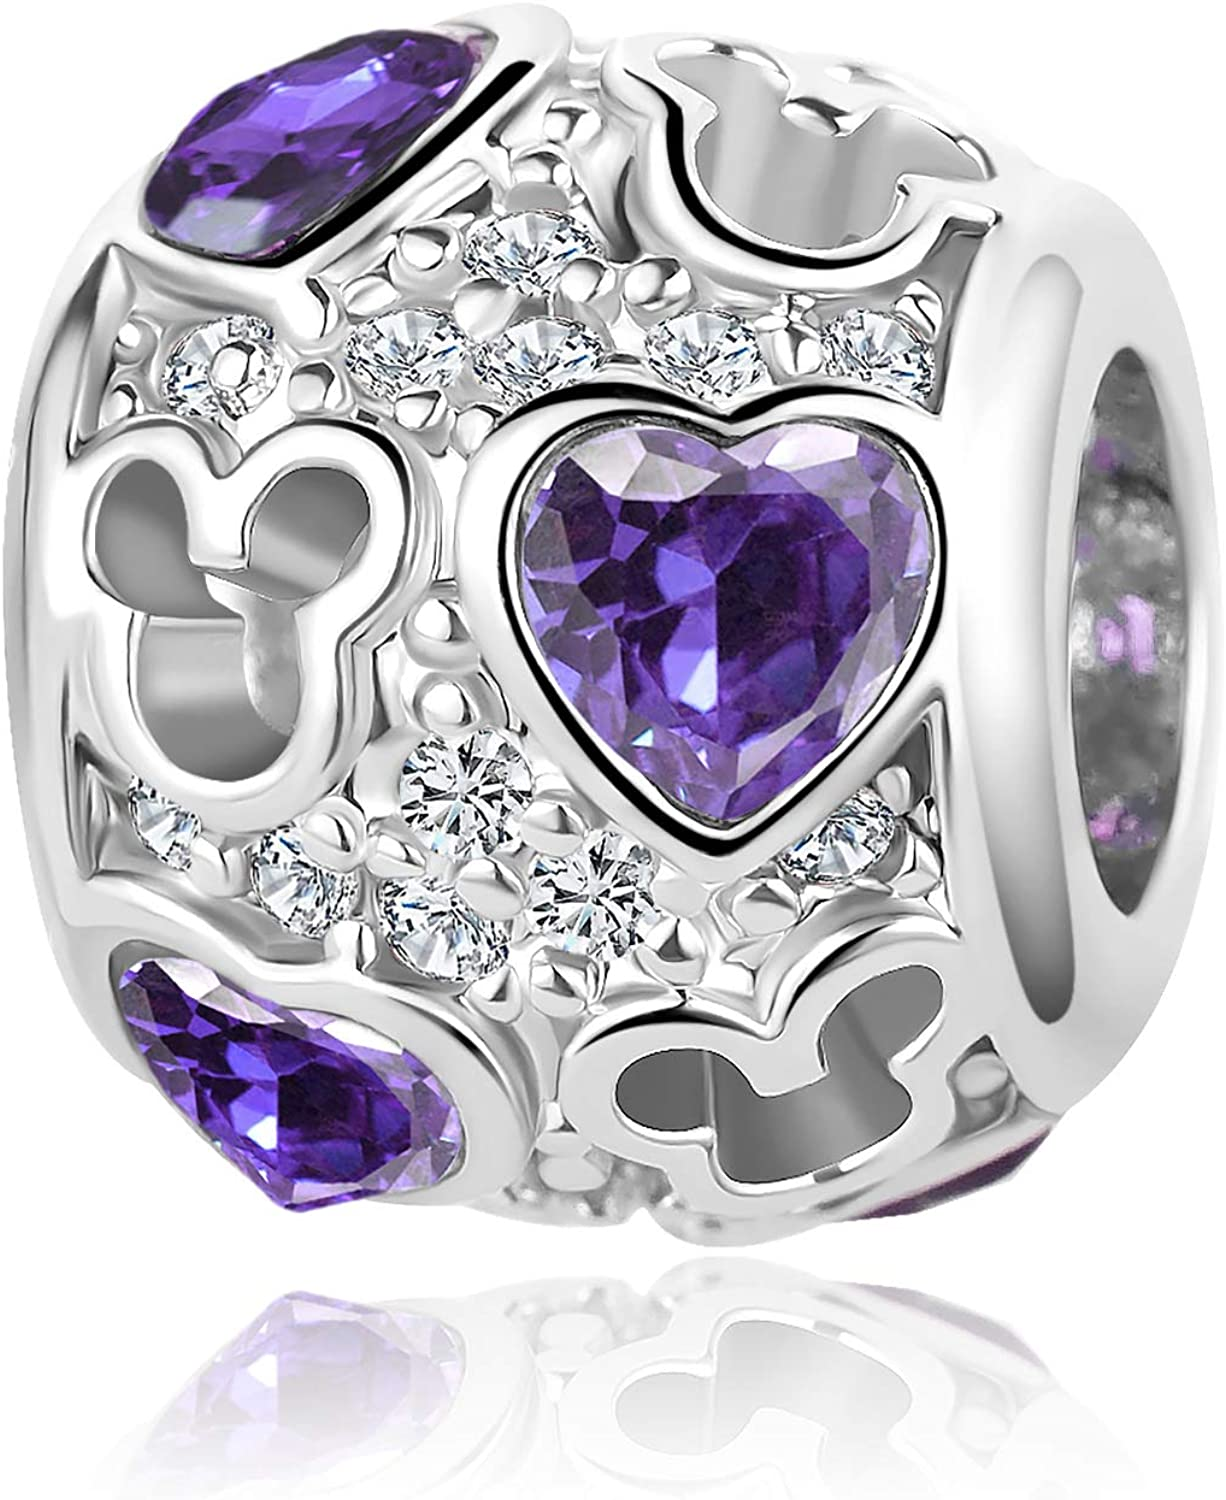 QeenseKc Mouse Openwork Heart Love Animal Round Charm Sparkling CZ Beads for Pandora Bracelet